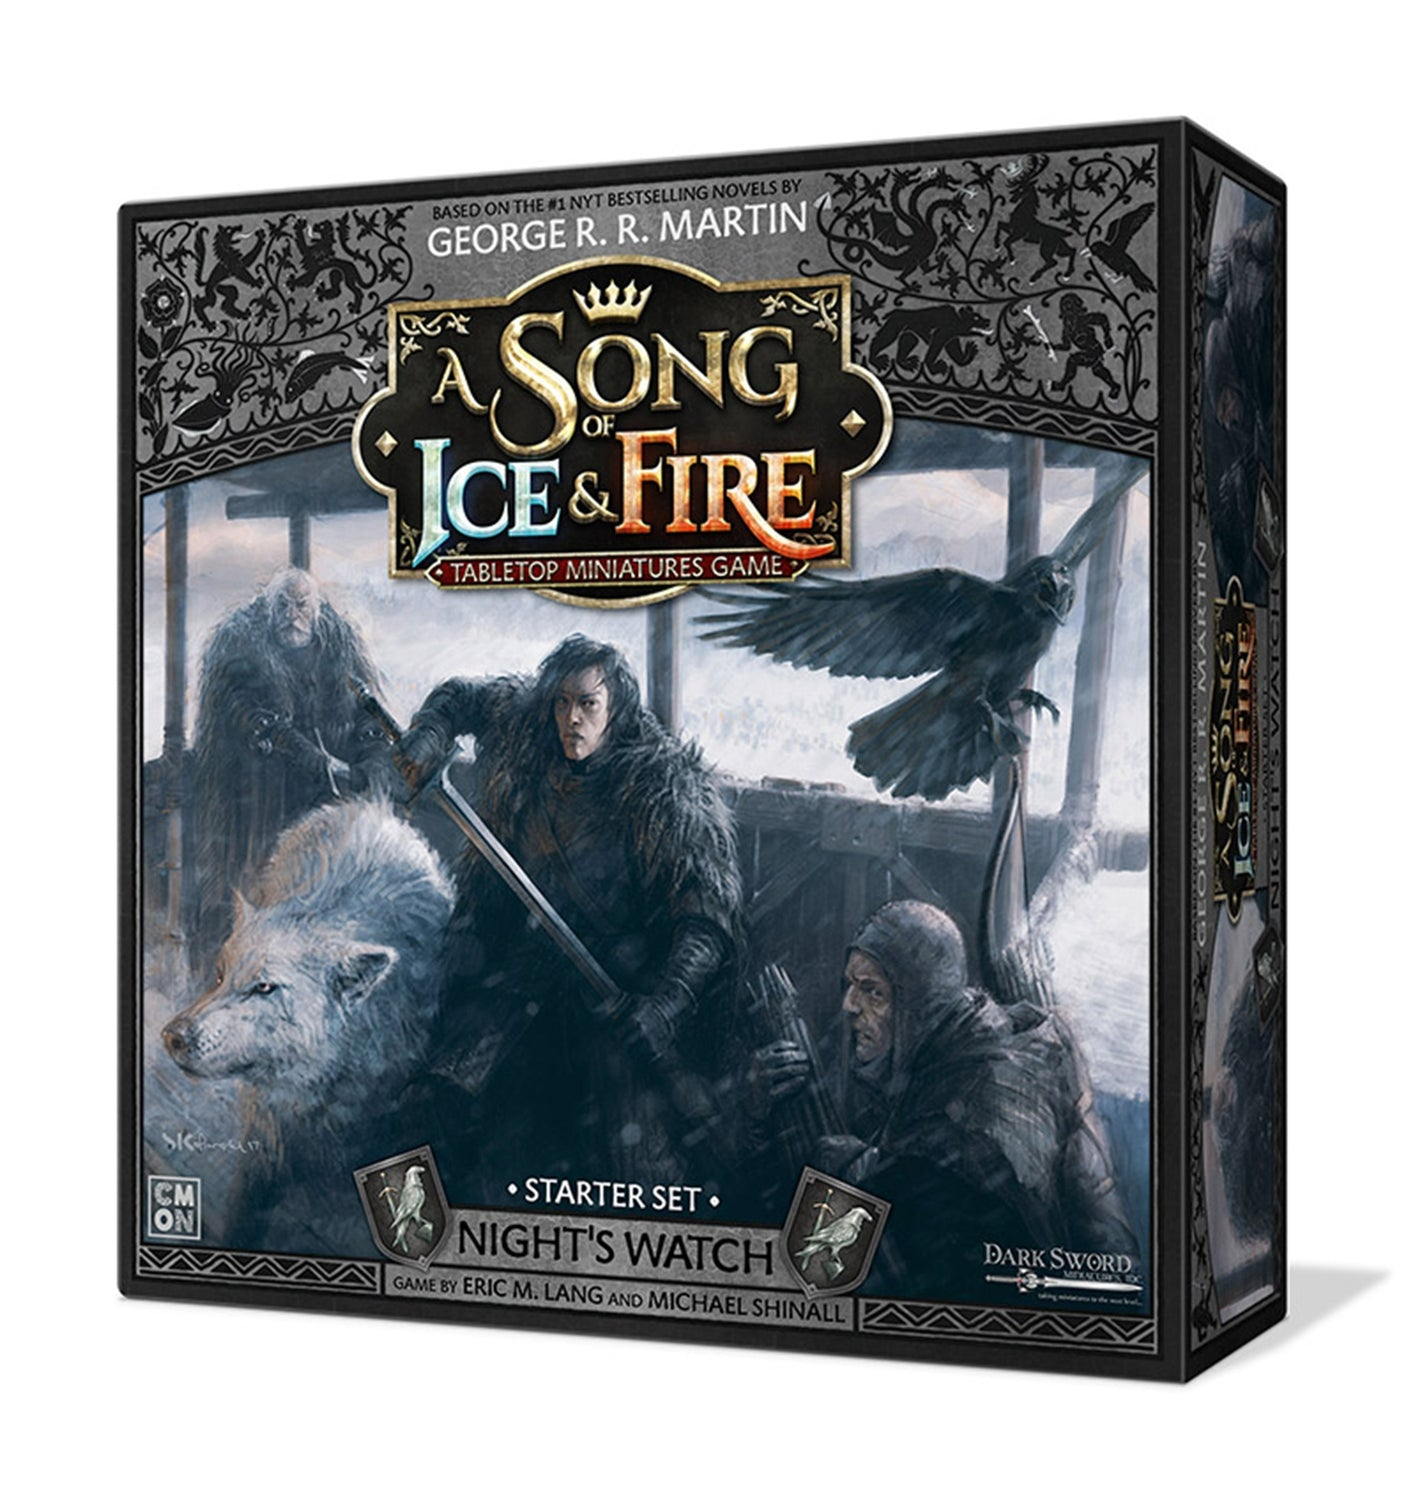 A Song of Ice & Fire Night's Watch Starter Set